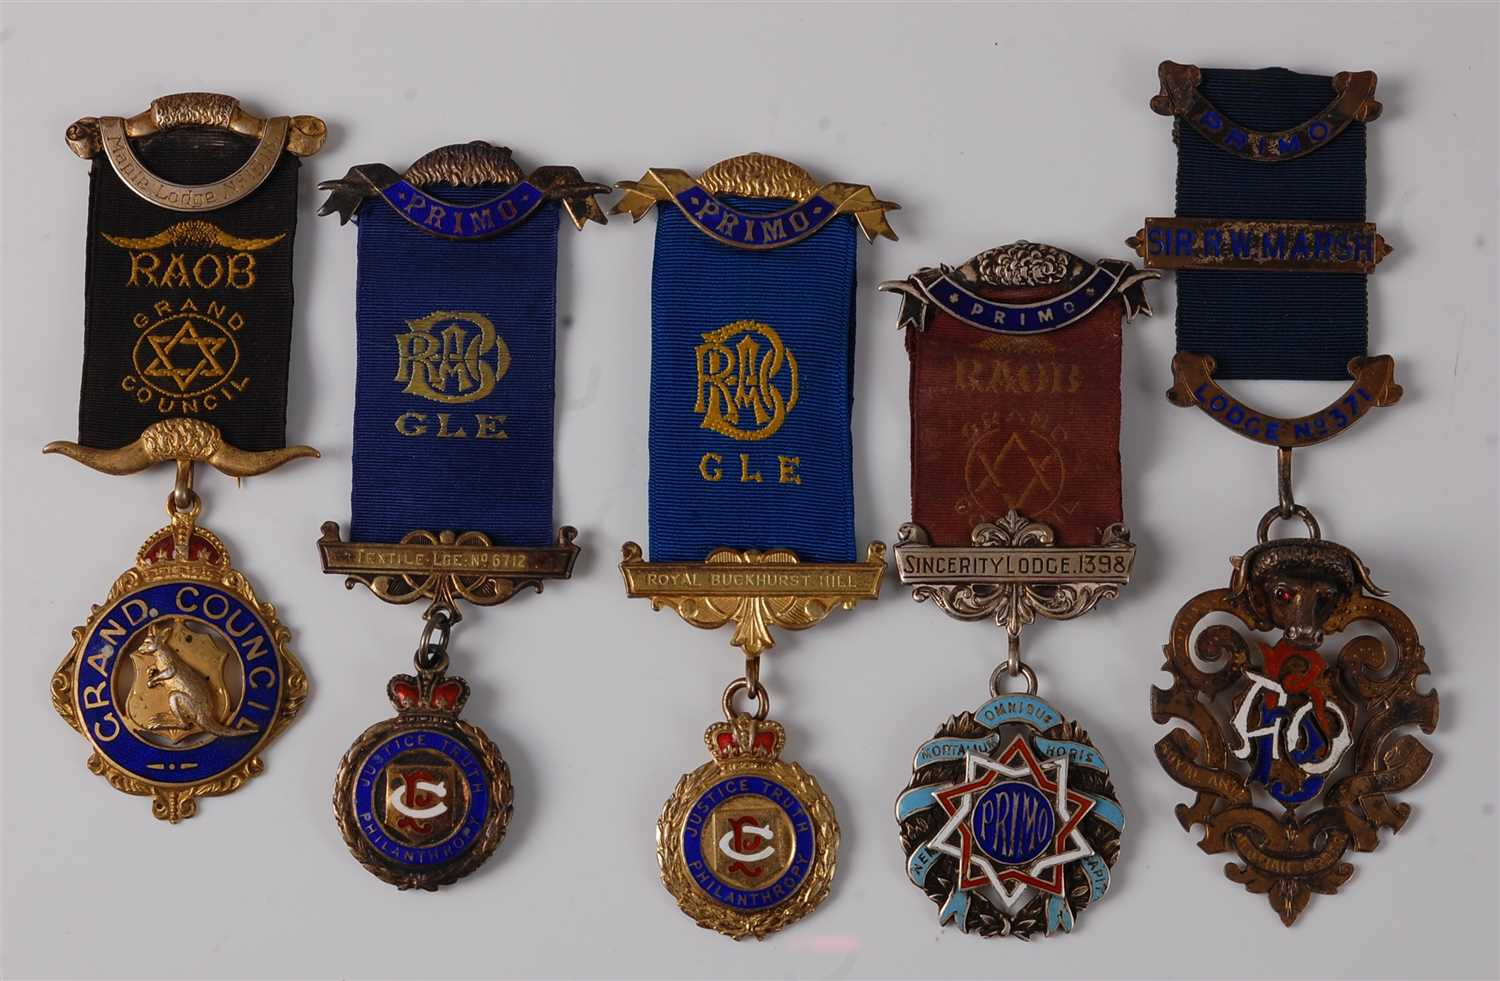 Lot 22 - A Royal Antediluvian Order of Buffaloes